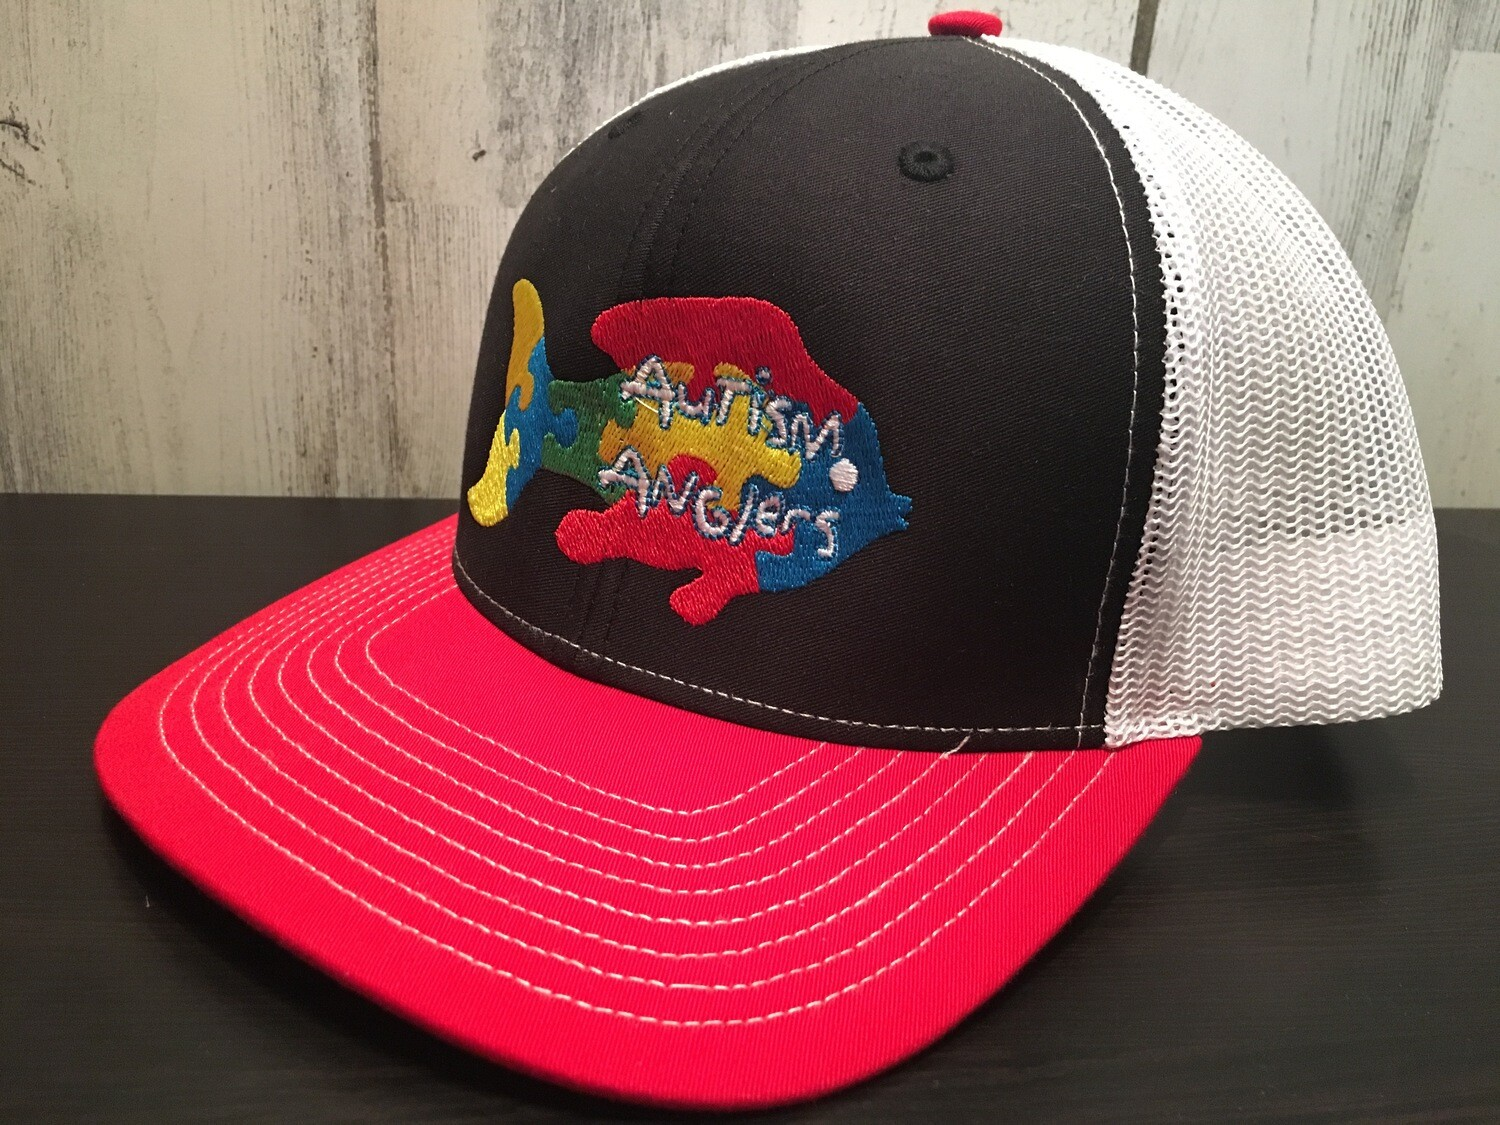 Autism Anglers Snap Back Hat- Red/Blk/Wht